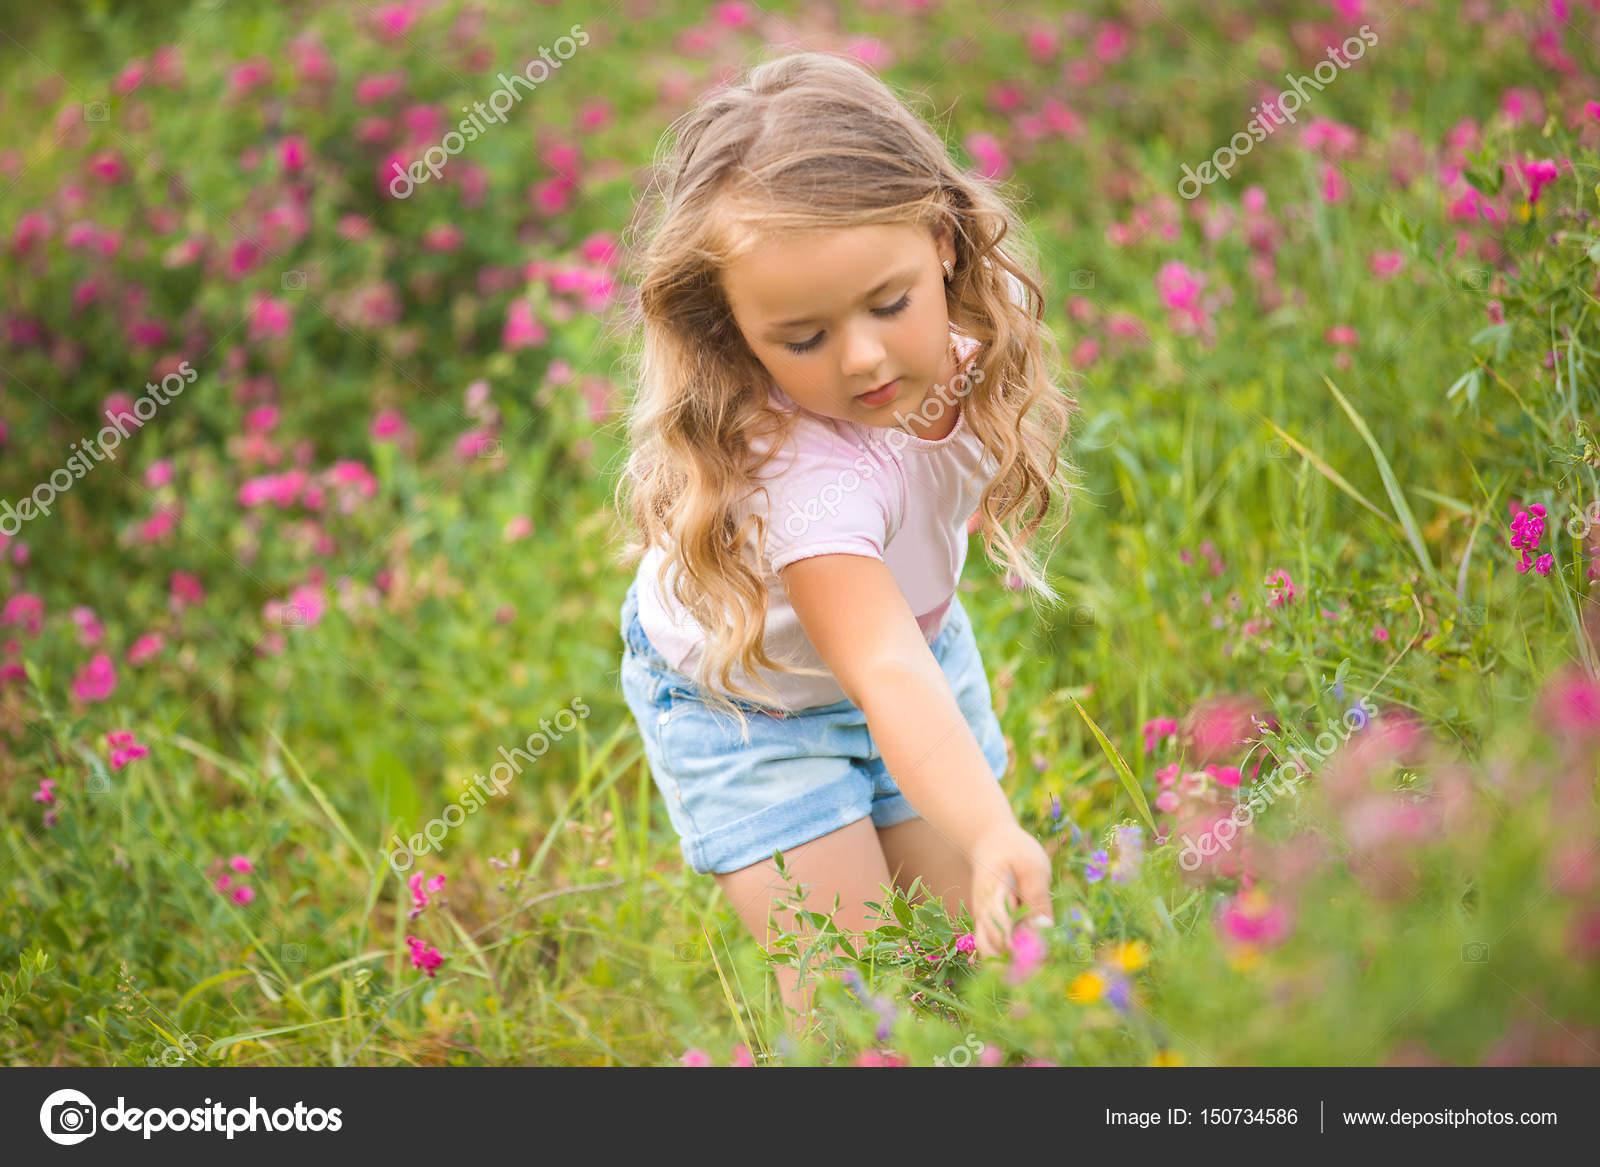 very cute little girl standing in the field of flowers on whild